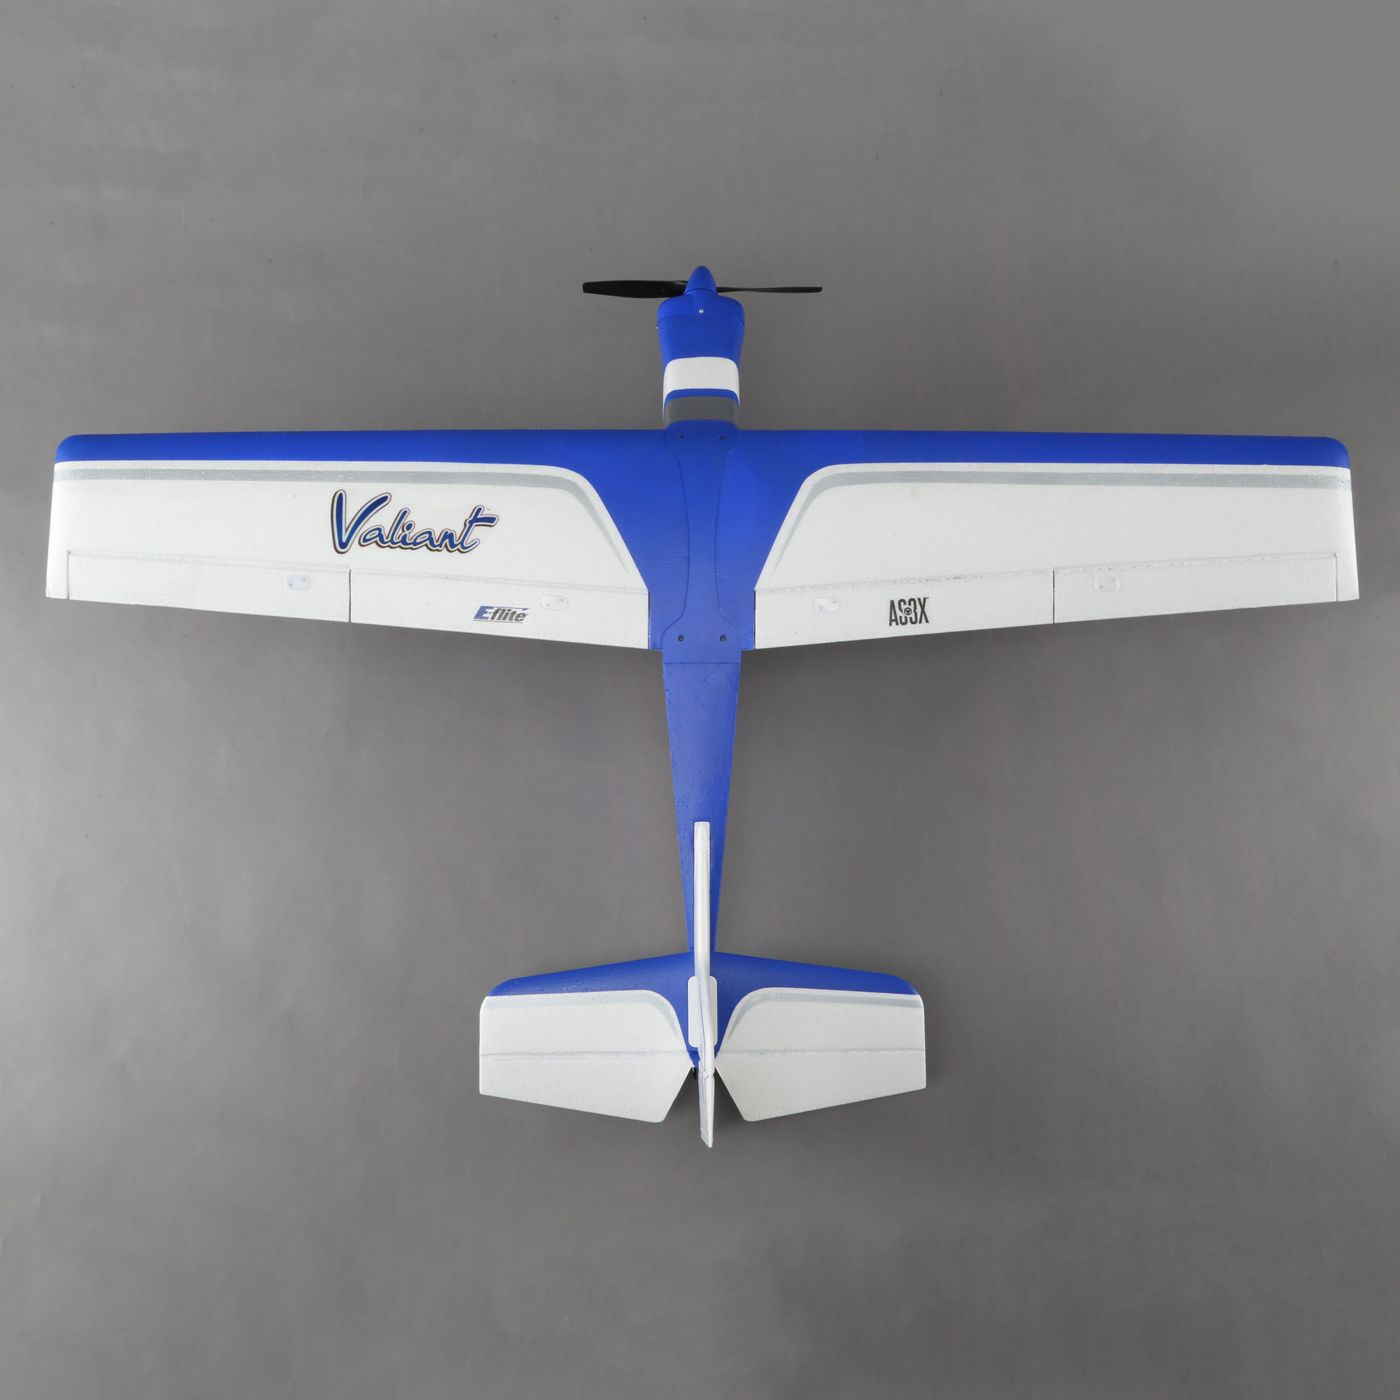 E Flite Valiant 13 Bnf Basic Rc Airplane Horizon Hobby Of Beginners Guide To Connecting Your Plane Electronic Parts 13m